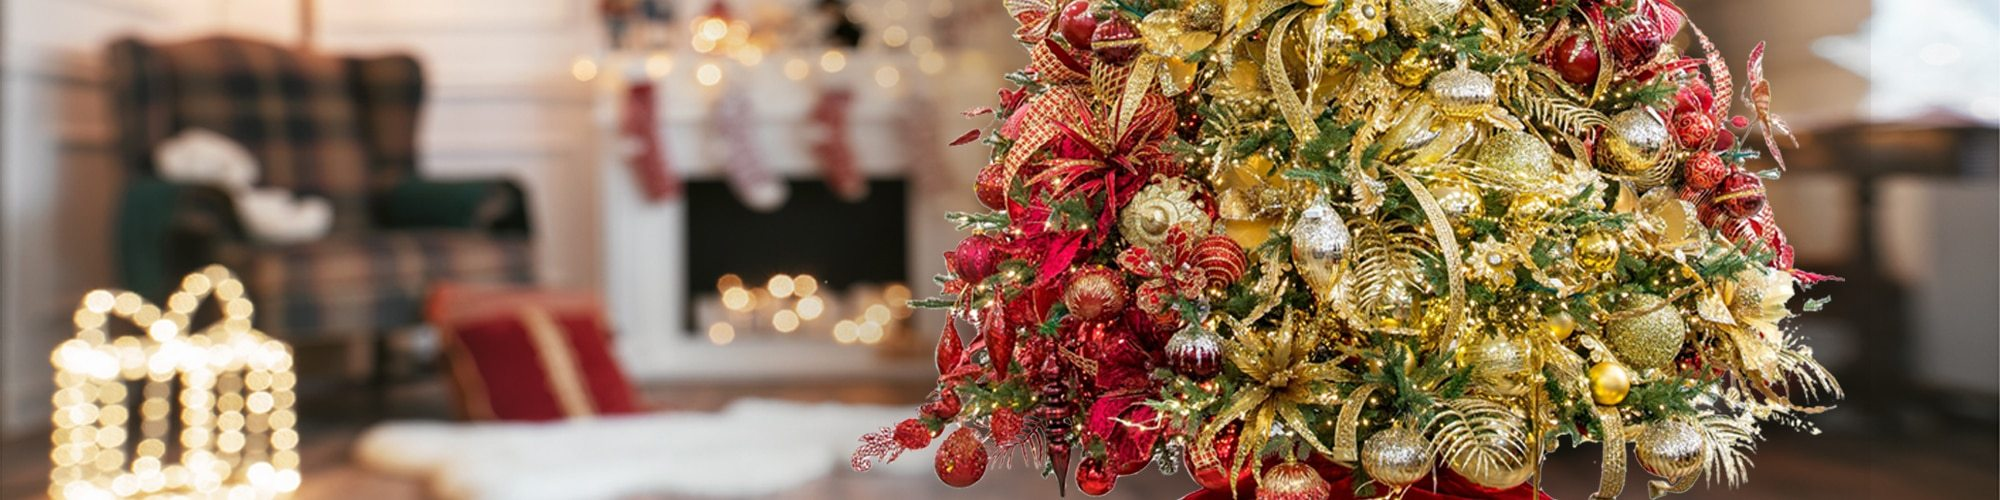 Year-Round Christmas Tree Decorating Ideas - A Tree for Every Month!